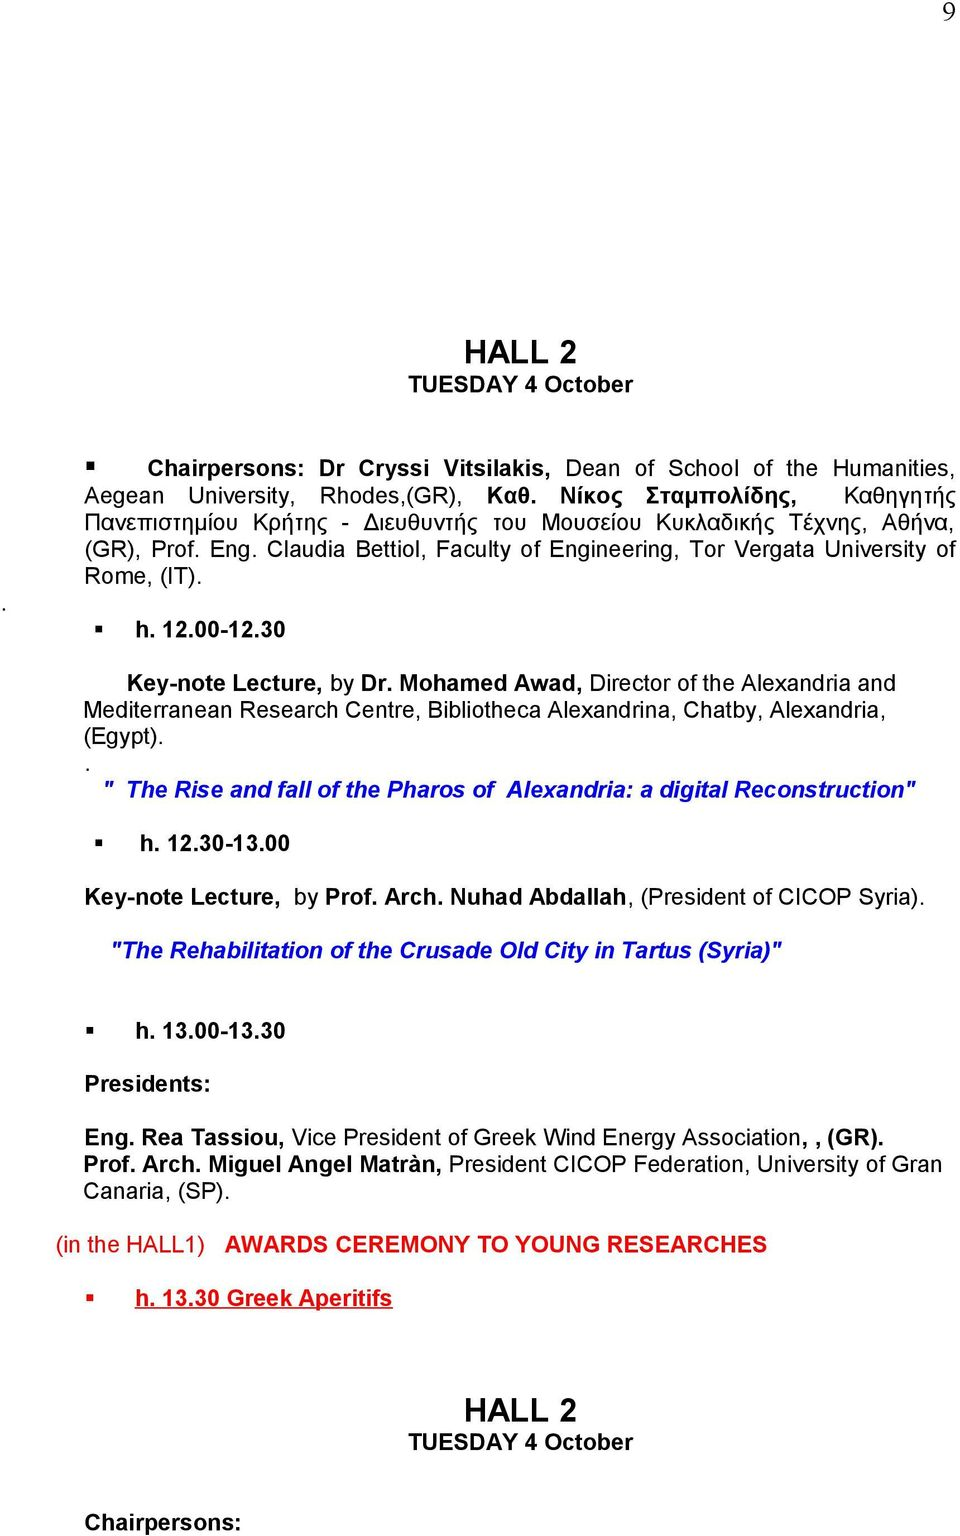 12.00-12.30 Key-note Lecture, by Dr. Mohamed Awad, Director of the Alexandria and Mediterranean Research Centre, Bibliotheca Alexandrina, Chatby, Alexandria, (Egypt).